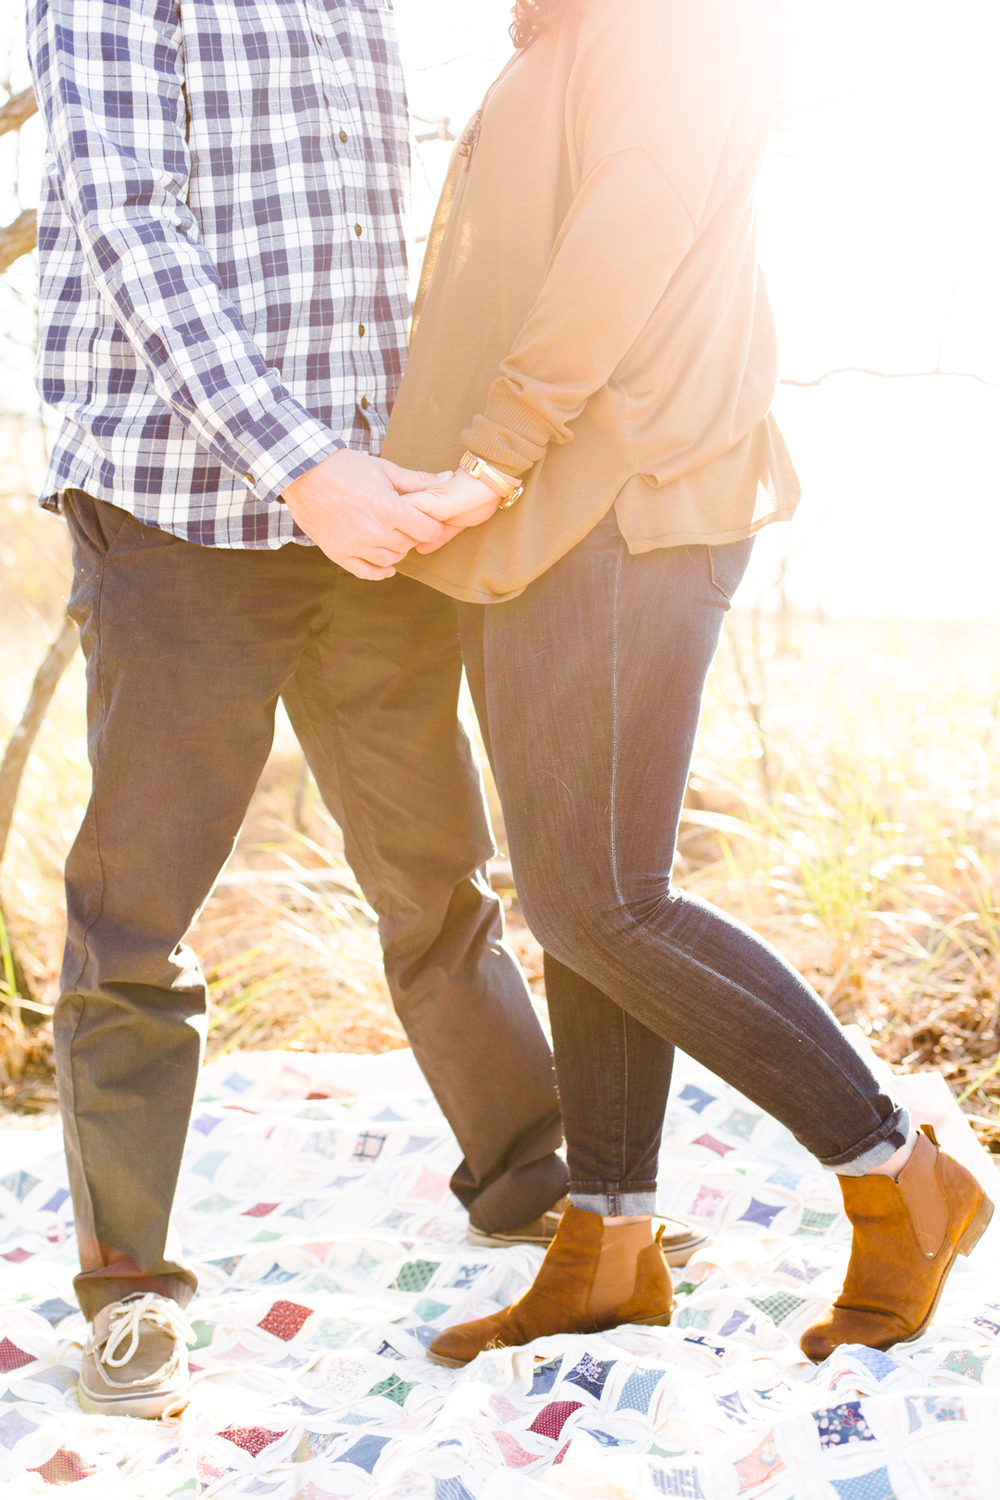 kent-island-terrapin-beach-park-boho-picnic-engagement-session-brooke-michelle-photography-78.jpg